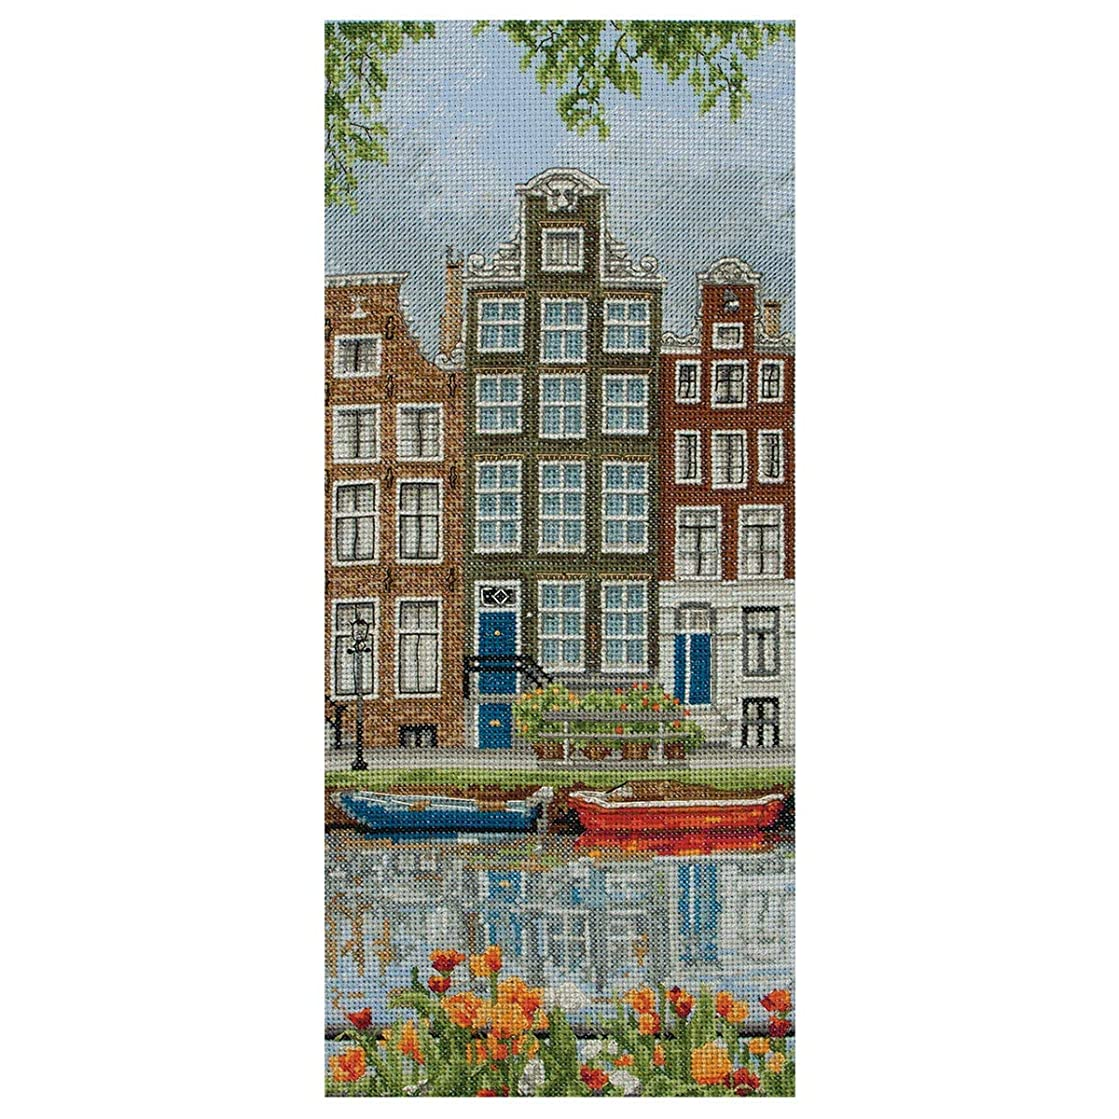 Anchor Amsterdam Street Scene Cross Stitch Kit